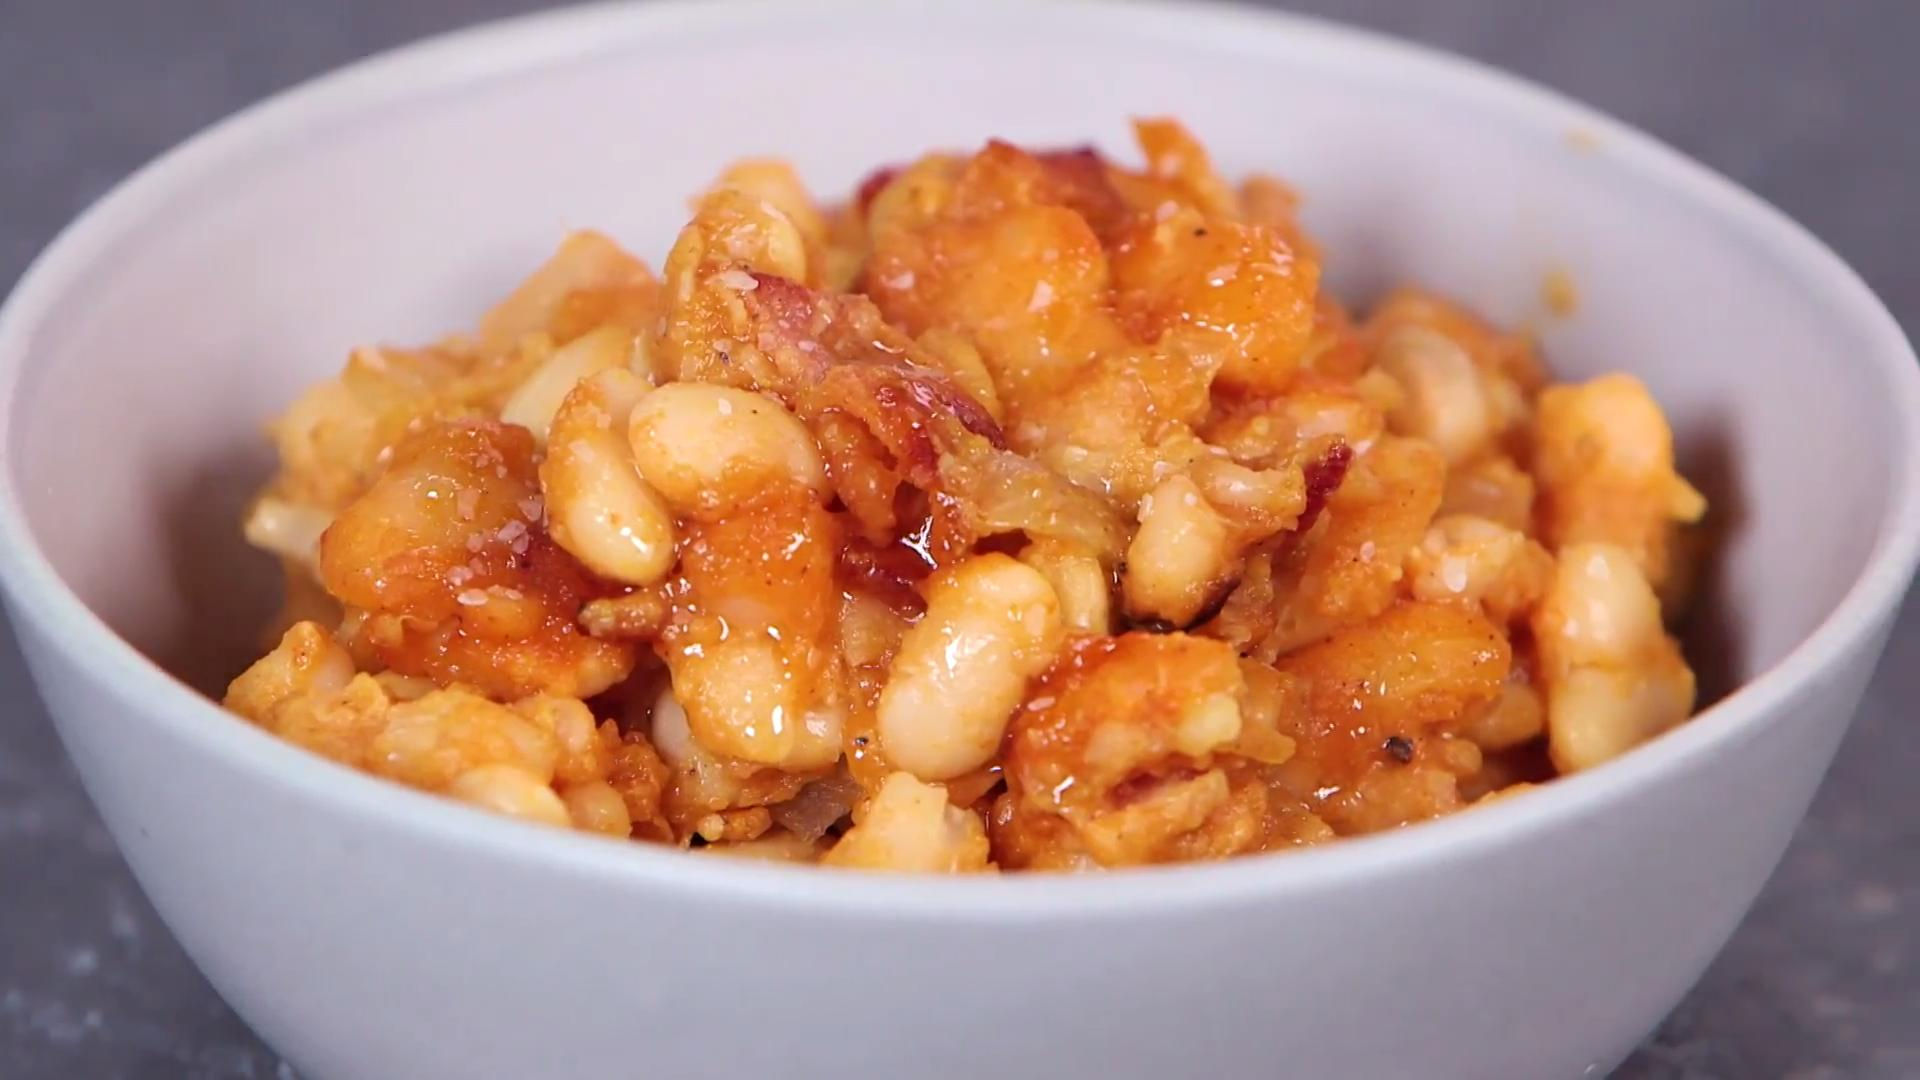 How to Make Maple Bacon Baked Beans - Cooking Light